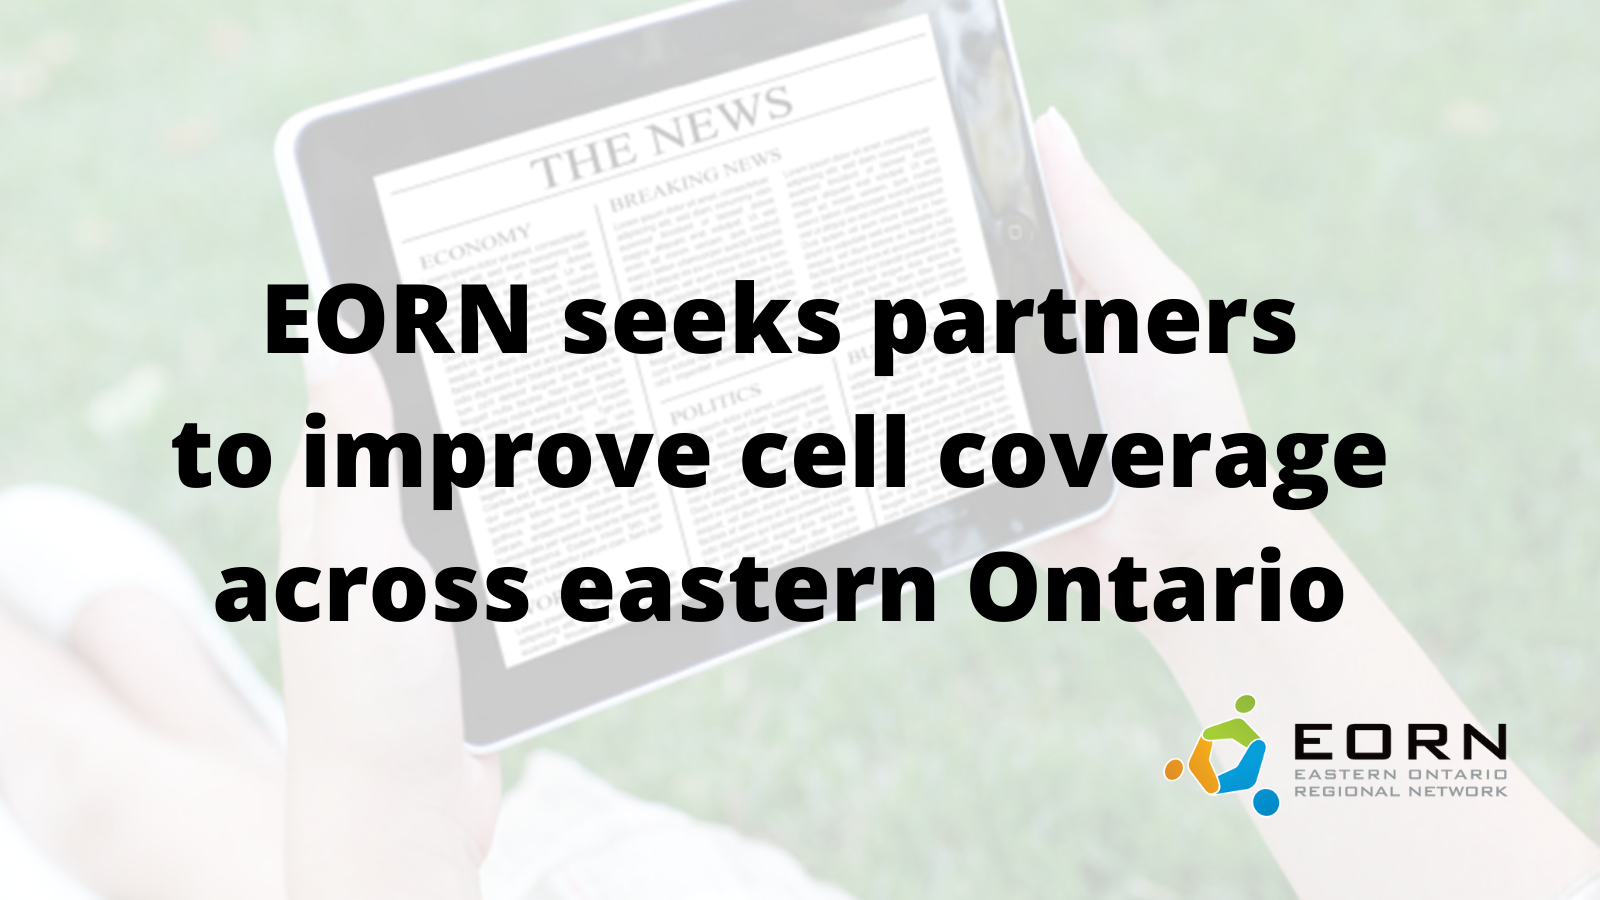 Ad seeking partners to improve cell coverage across Eastern Ontario